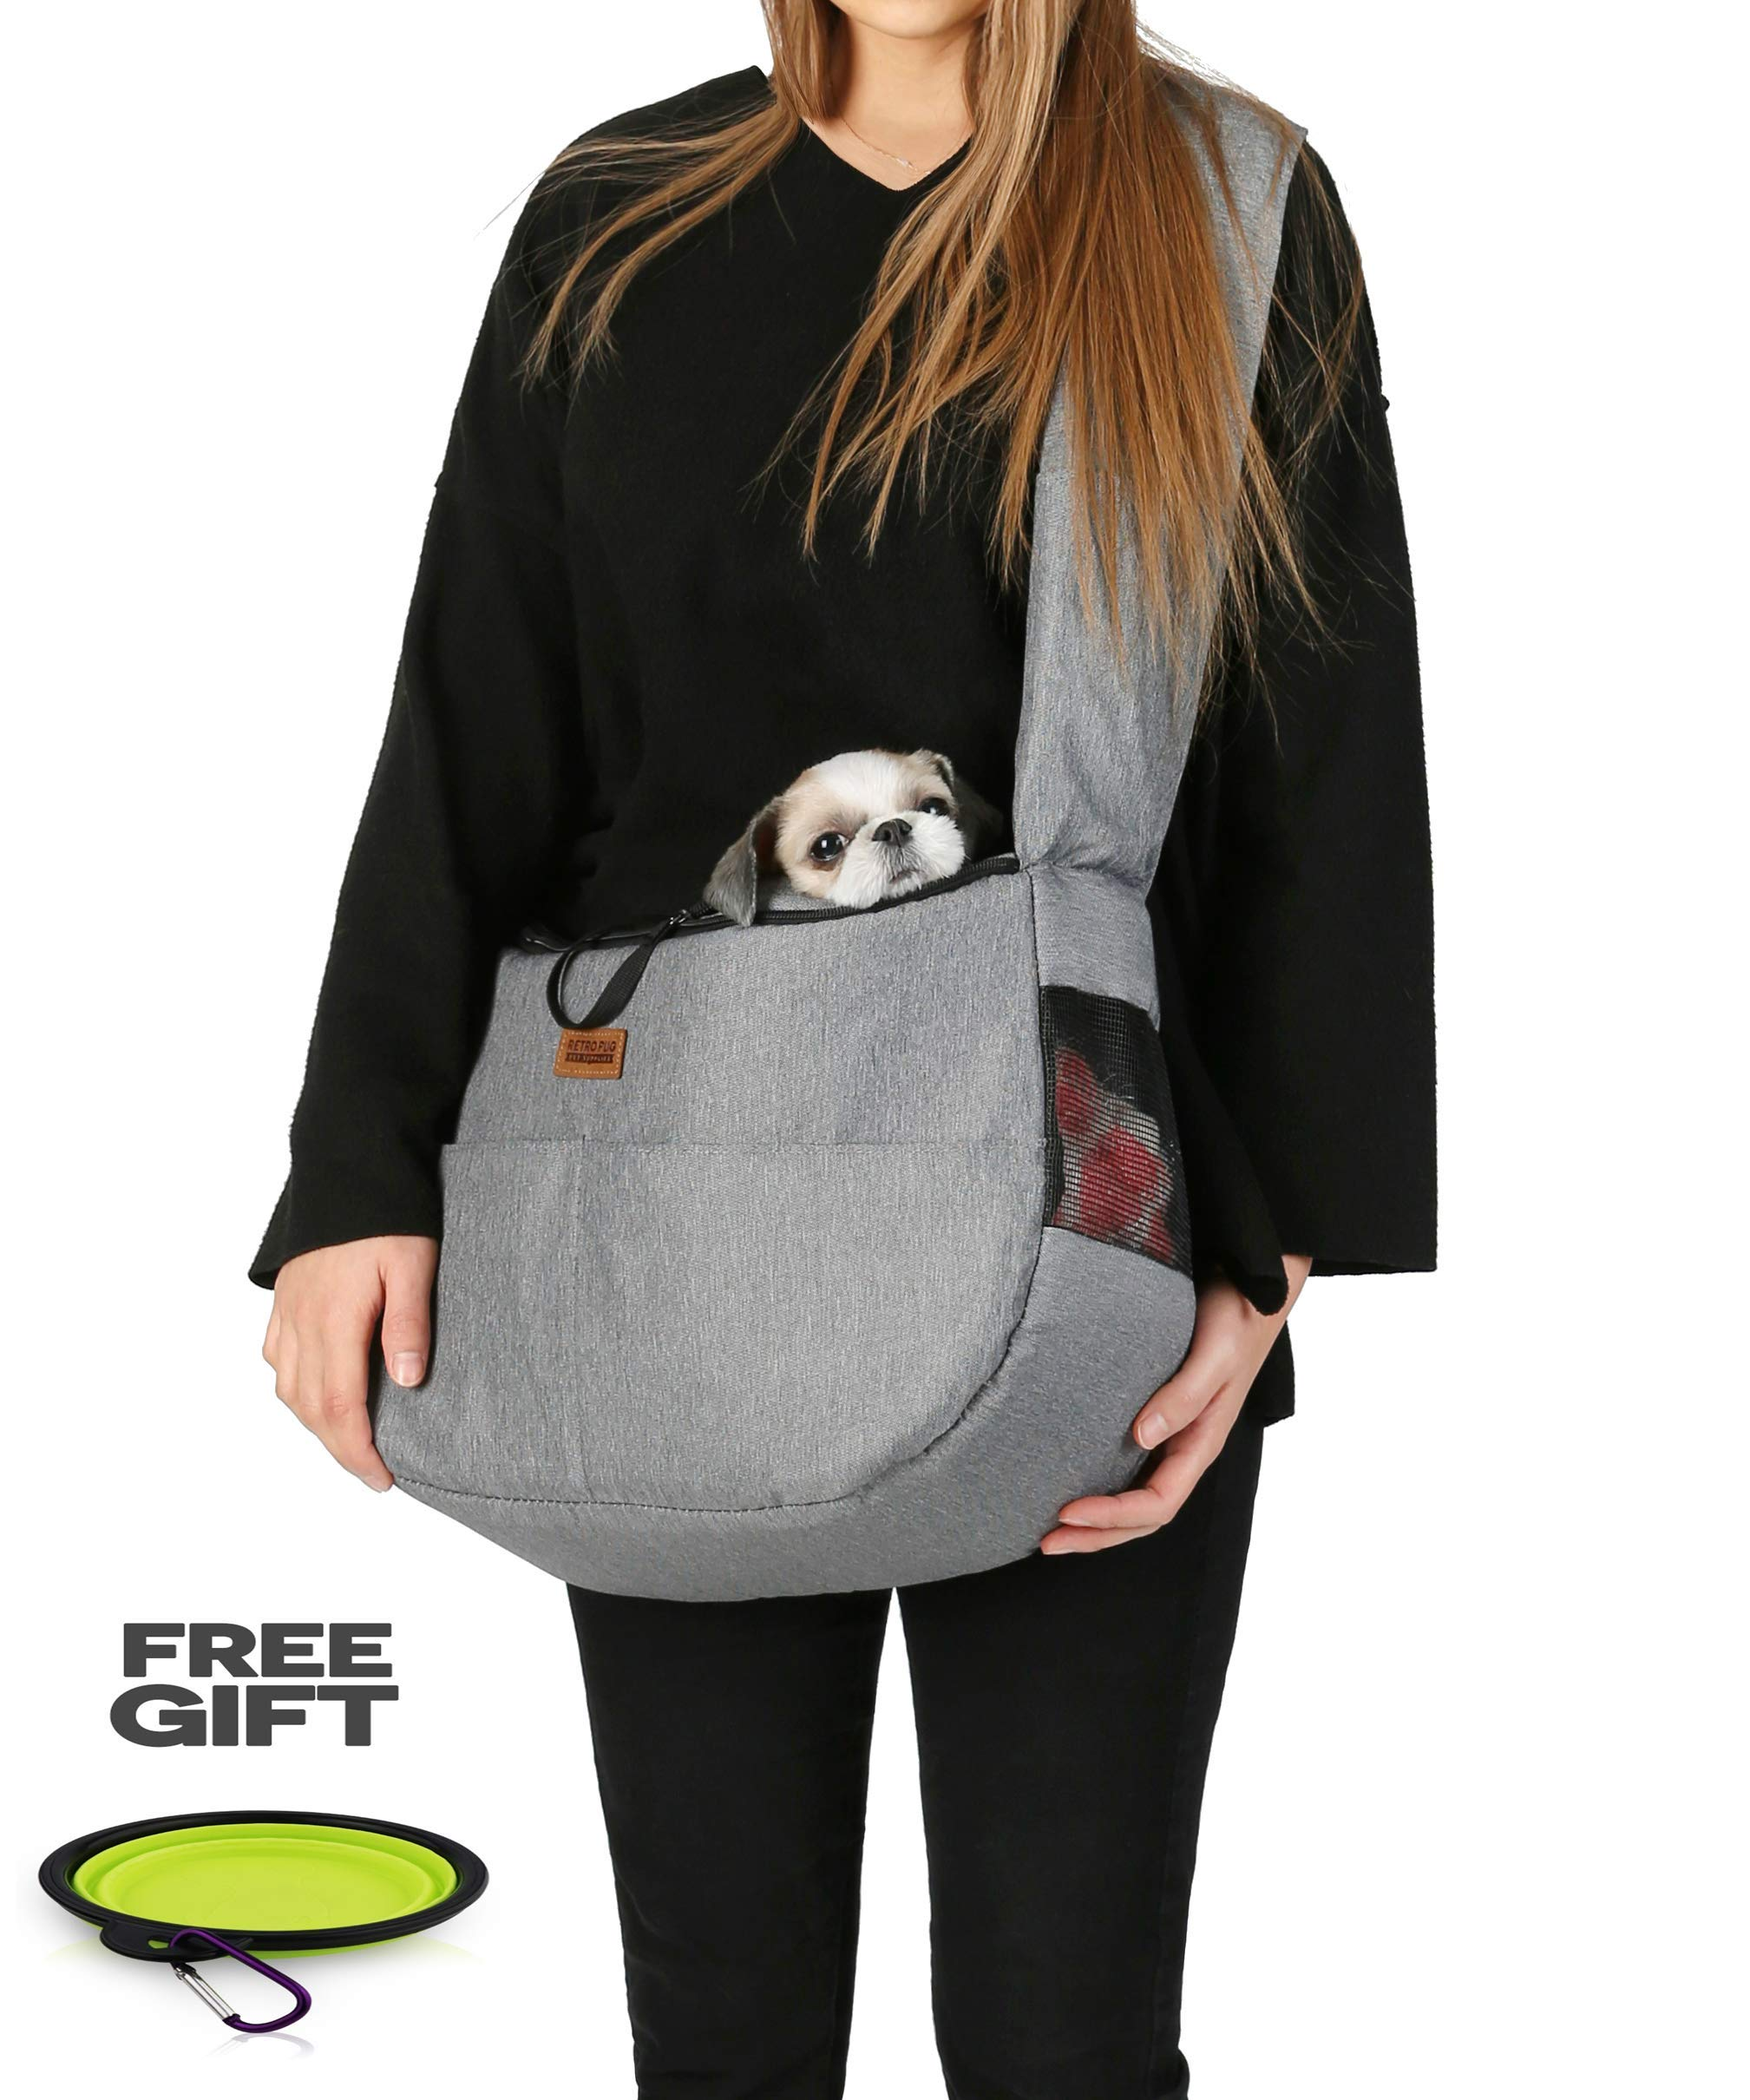 RETRO PUG Travel Mate Pet Carrier Sling Bag - Purse - Front Pack - Shoulder Strap Adjustable - Puppy Carrying Bag - Dog Carriers for Small and Medium Dogs,Cats - Free Silicone Bowl - Up to 10~15 lbs